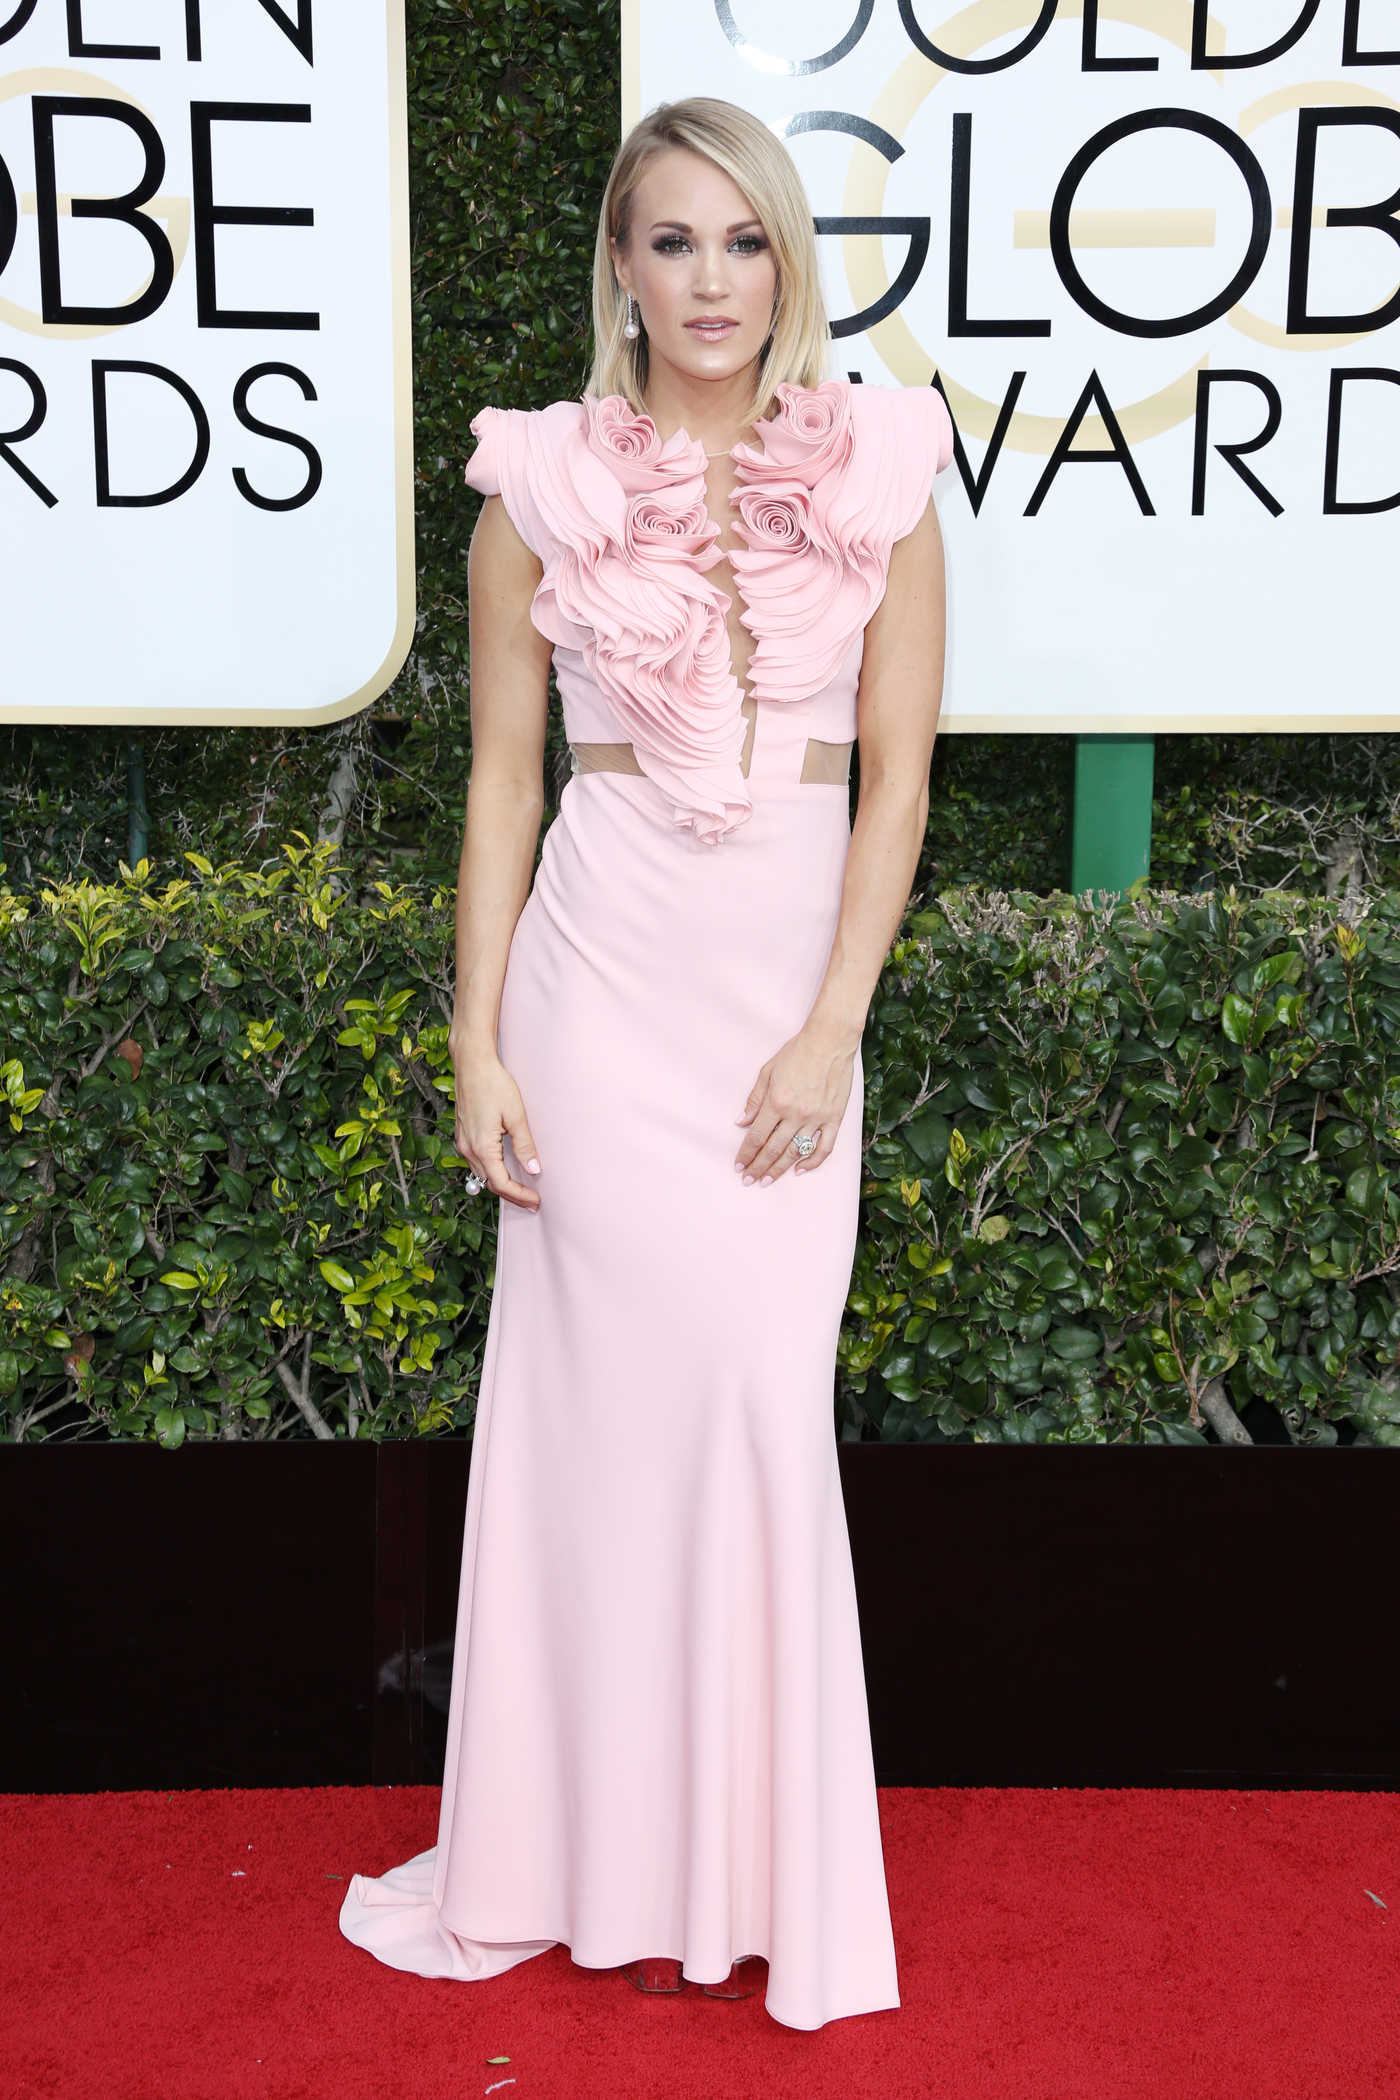 Carrie Underwood at the 74th Annual Golden Globe Awards in Beverly Hills 01/08/2017